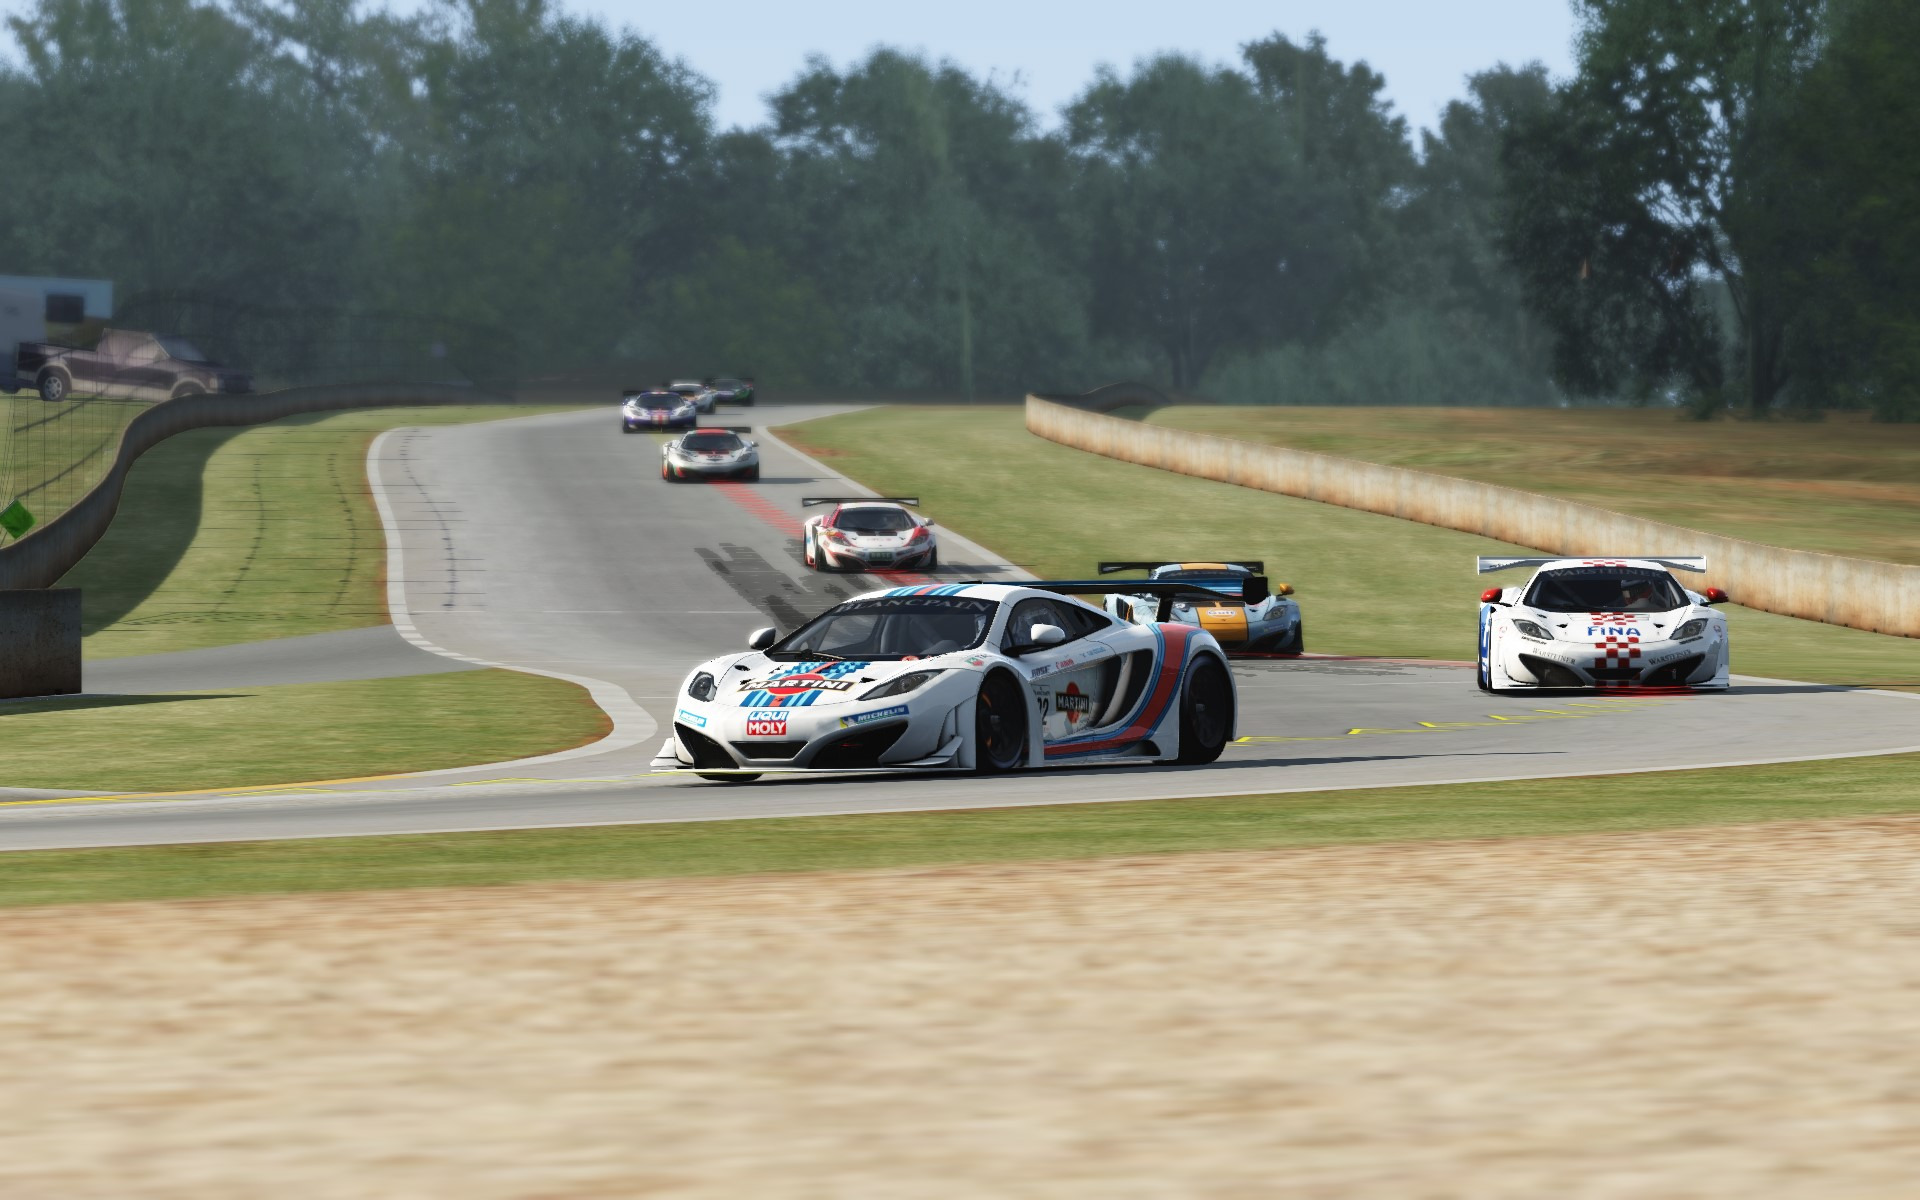 Screenshot_mclaren_mp412c_gt3_road atlanta_10-8-115-13-59-31.jpg